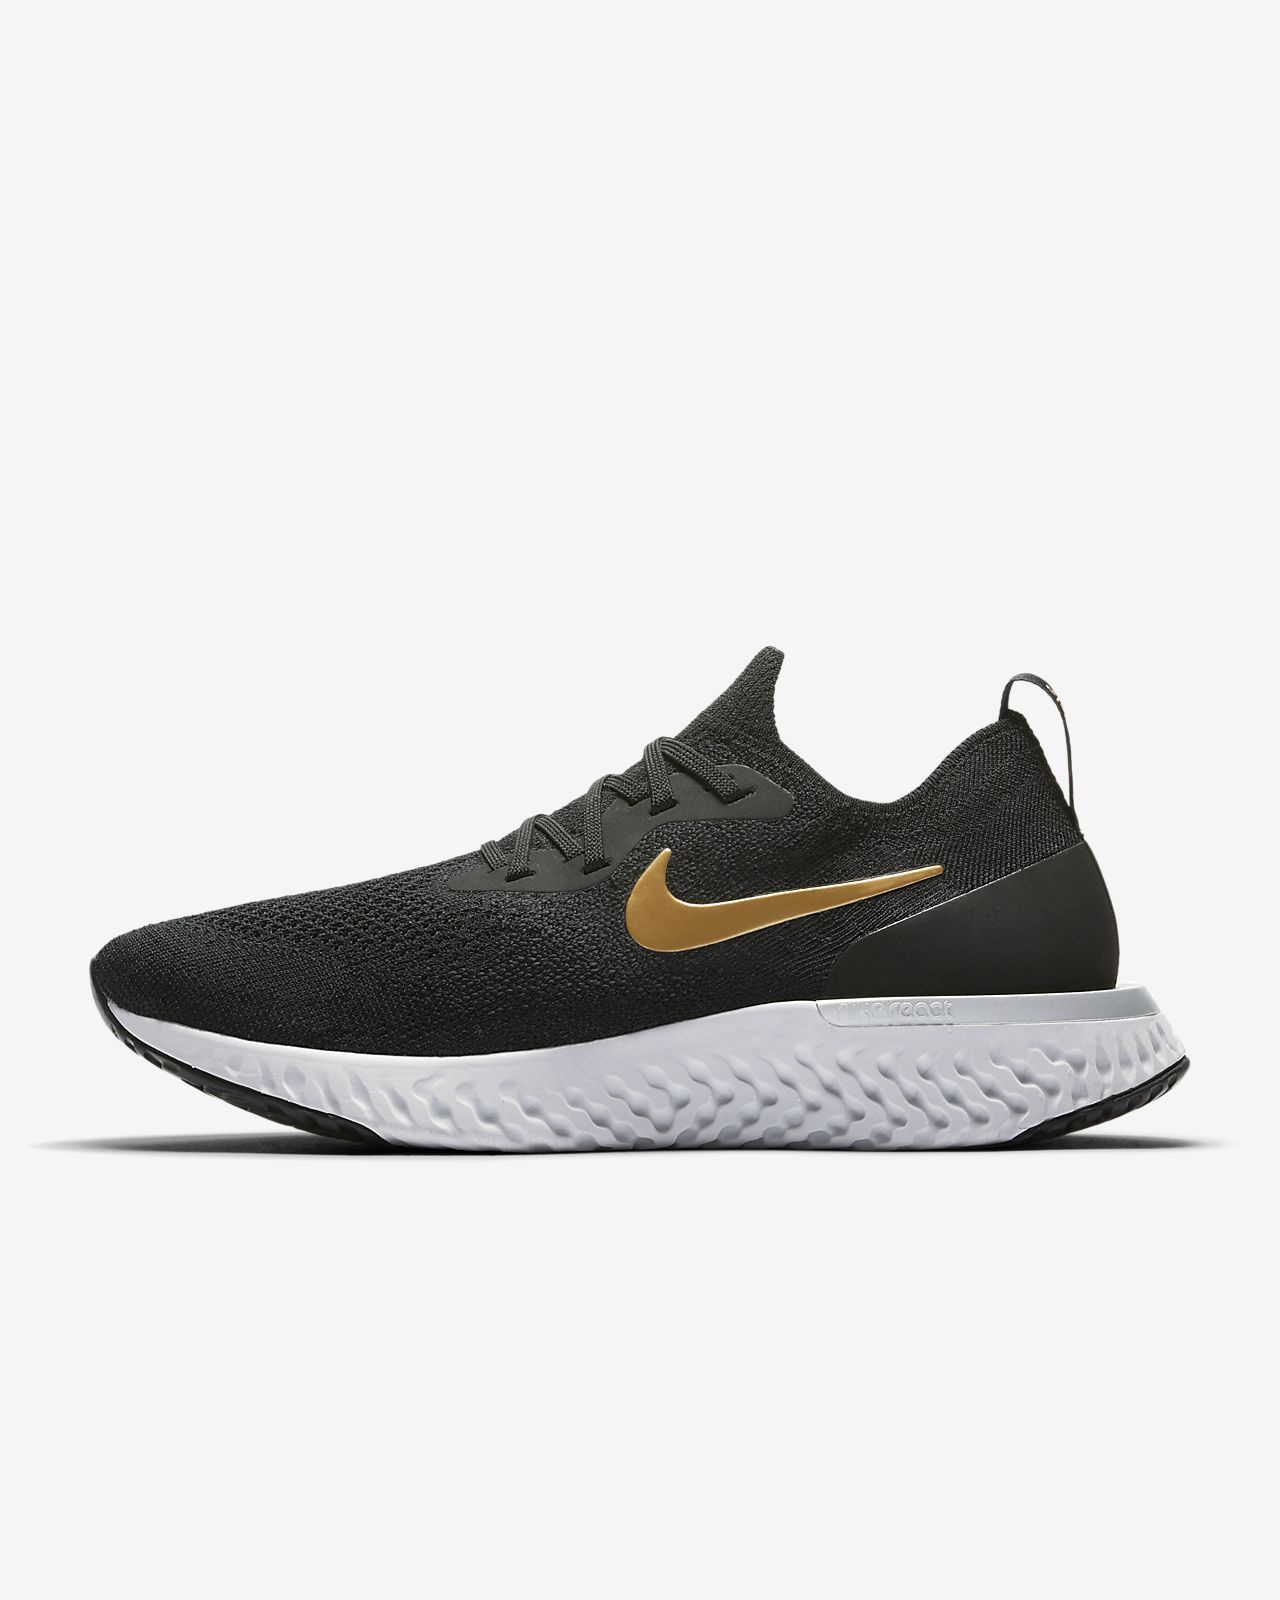 7f6b515a922 Nike Air Max 2017 Price In India